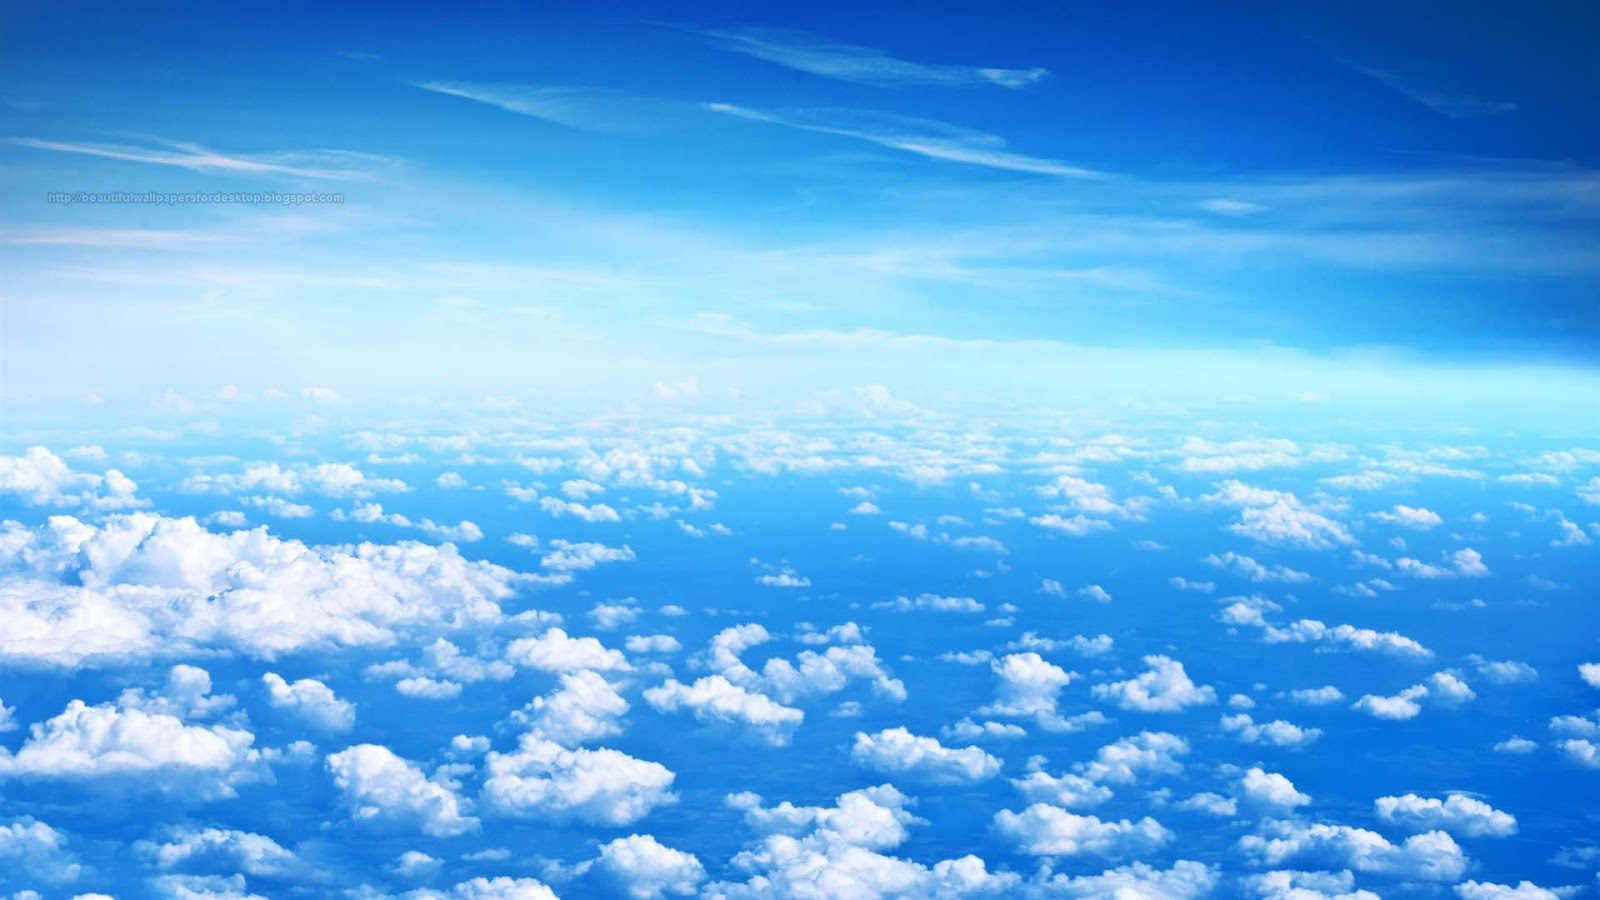 Download Pure Blue Sky Wallpaper Free Wallpapers Sky Image